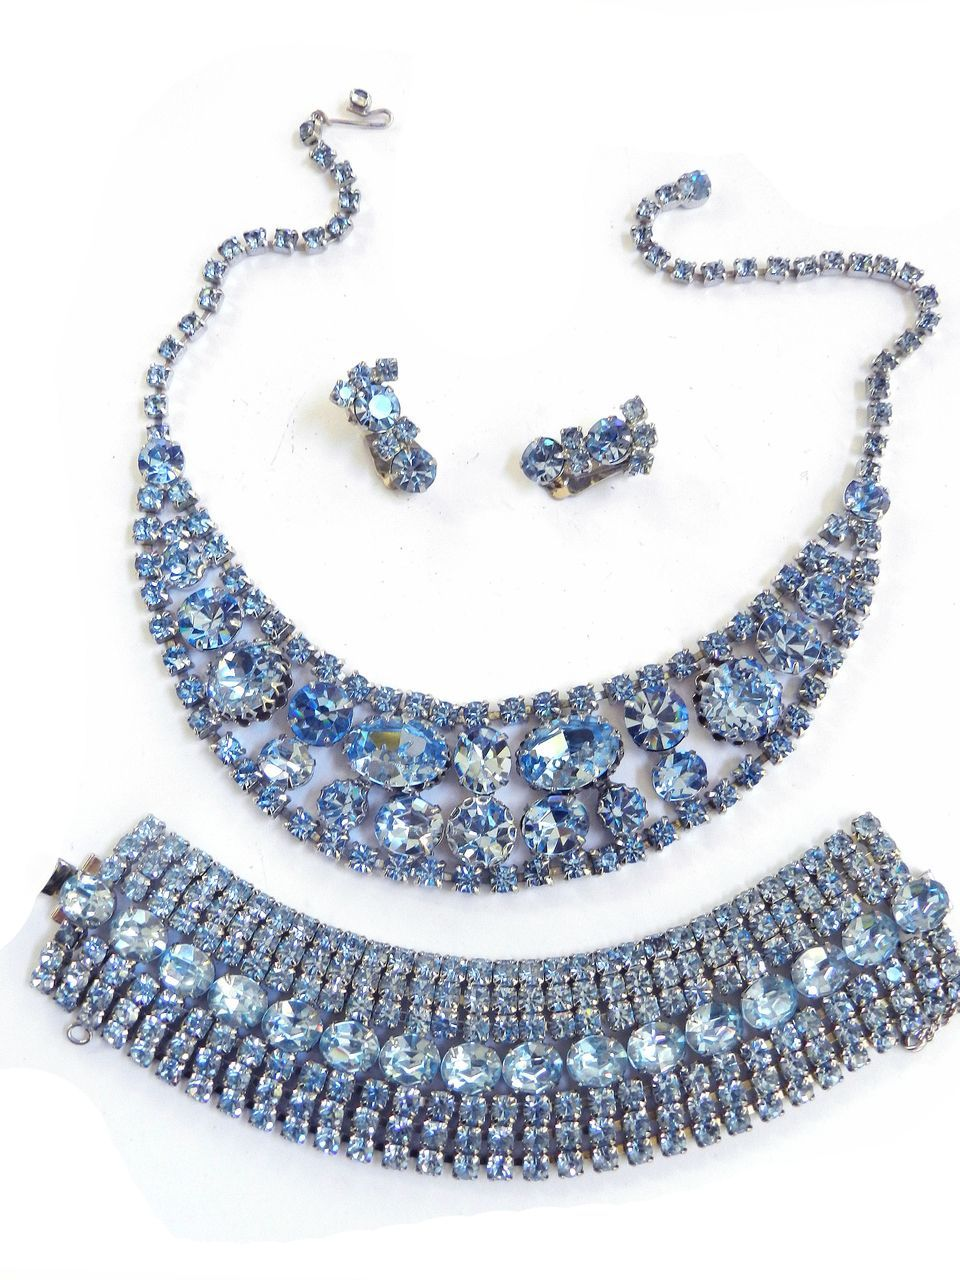 Gorgeous Light Sapphire Blue Big Stones  1950s Bib Collar Necklace Bracelet Earrings